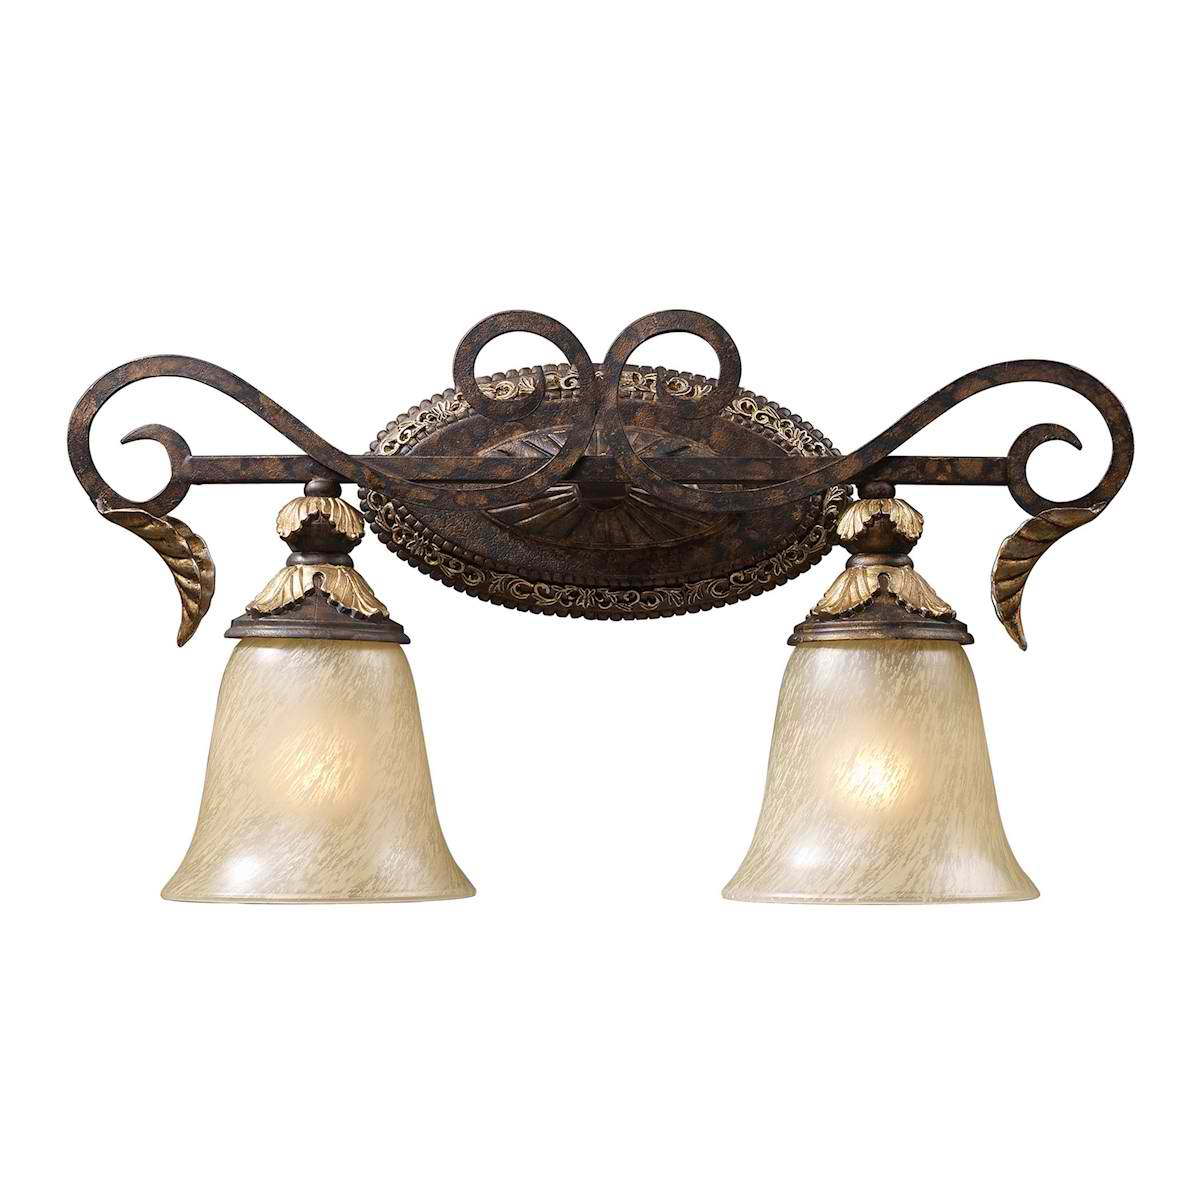 Regency 2-Light in Burnt Bronze